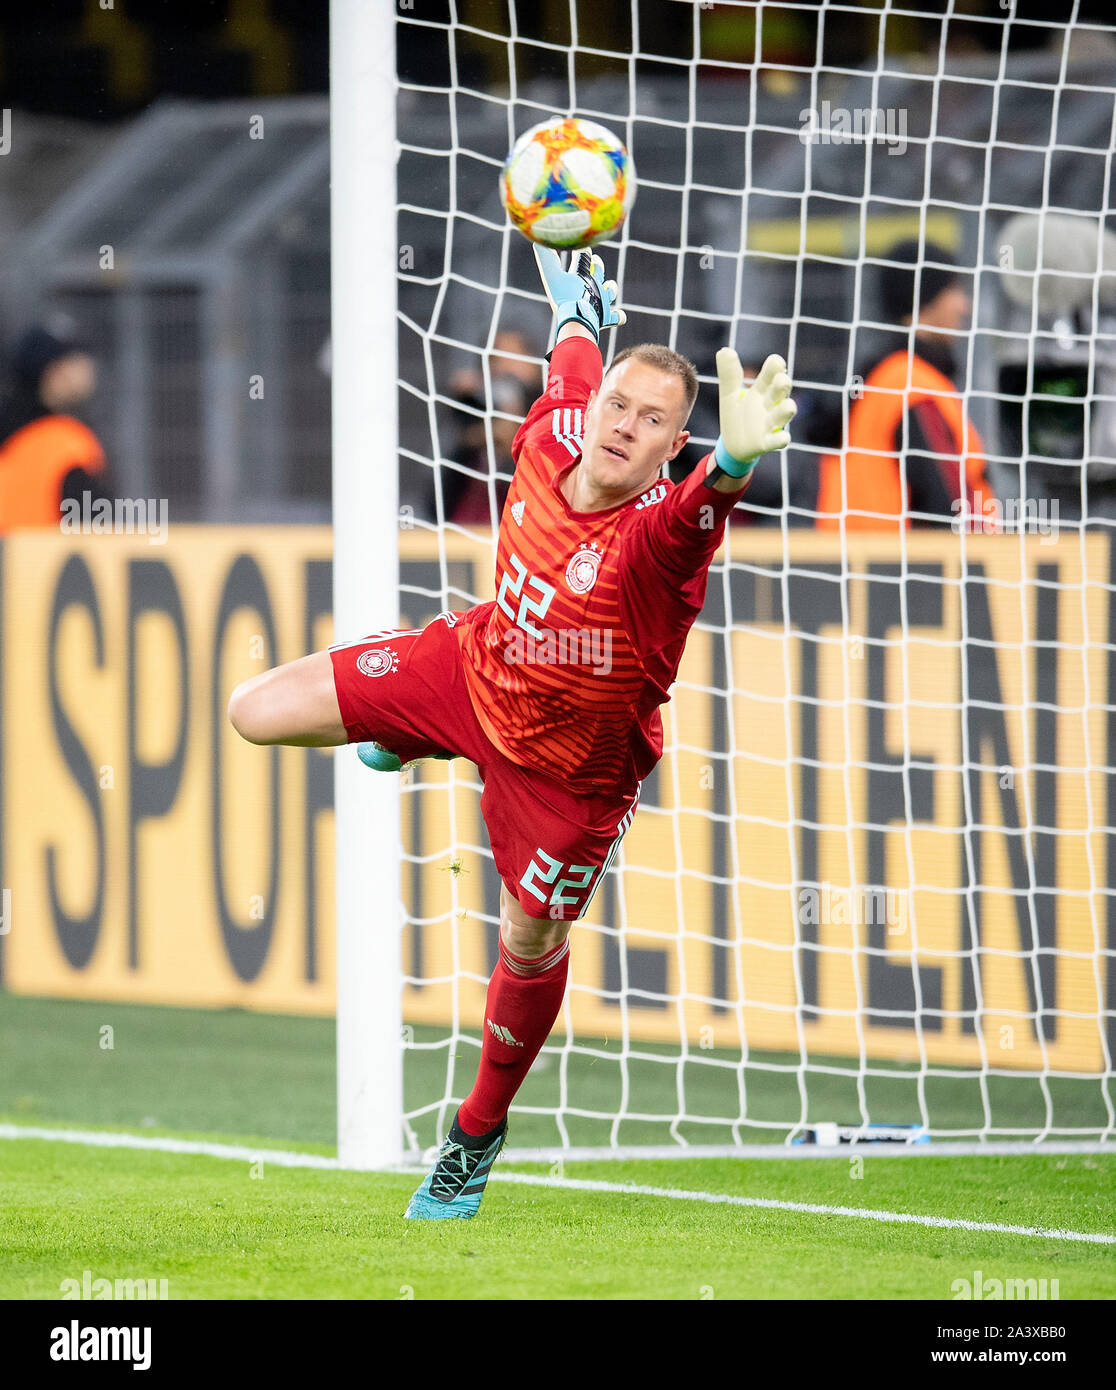 Goal to 2: 1 by Lucas ALARIO (ARG/not pictured) Goalkeeper Marc-Andre TER STEGEN (GER) stretches in vain, Action, Football Laenderpiel, Friendly Match, Germany (GER) - Argentina (ARG), on 09.10.2019 in Dortmund/Germany. ¬   usage worldwide Stock Photo